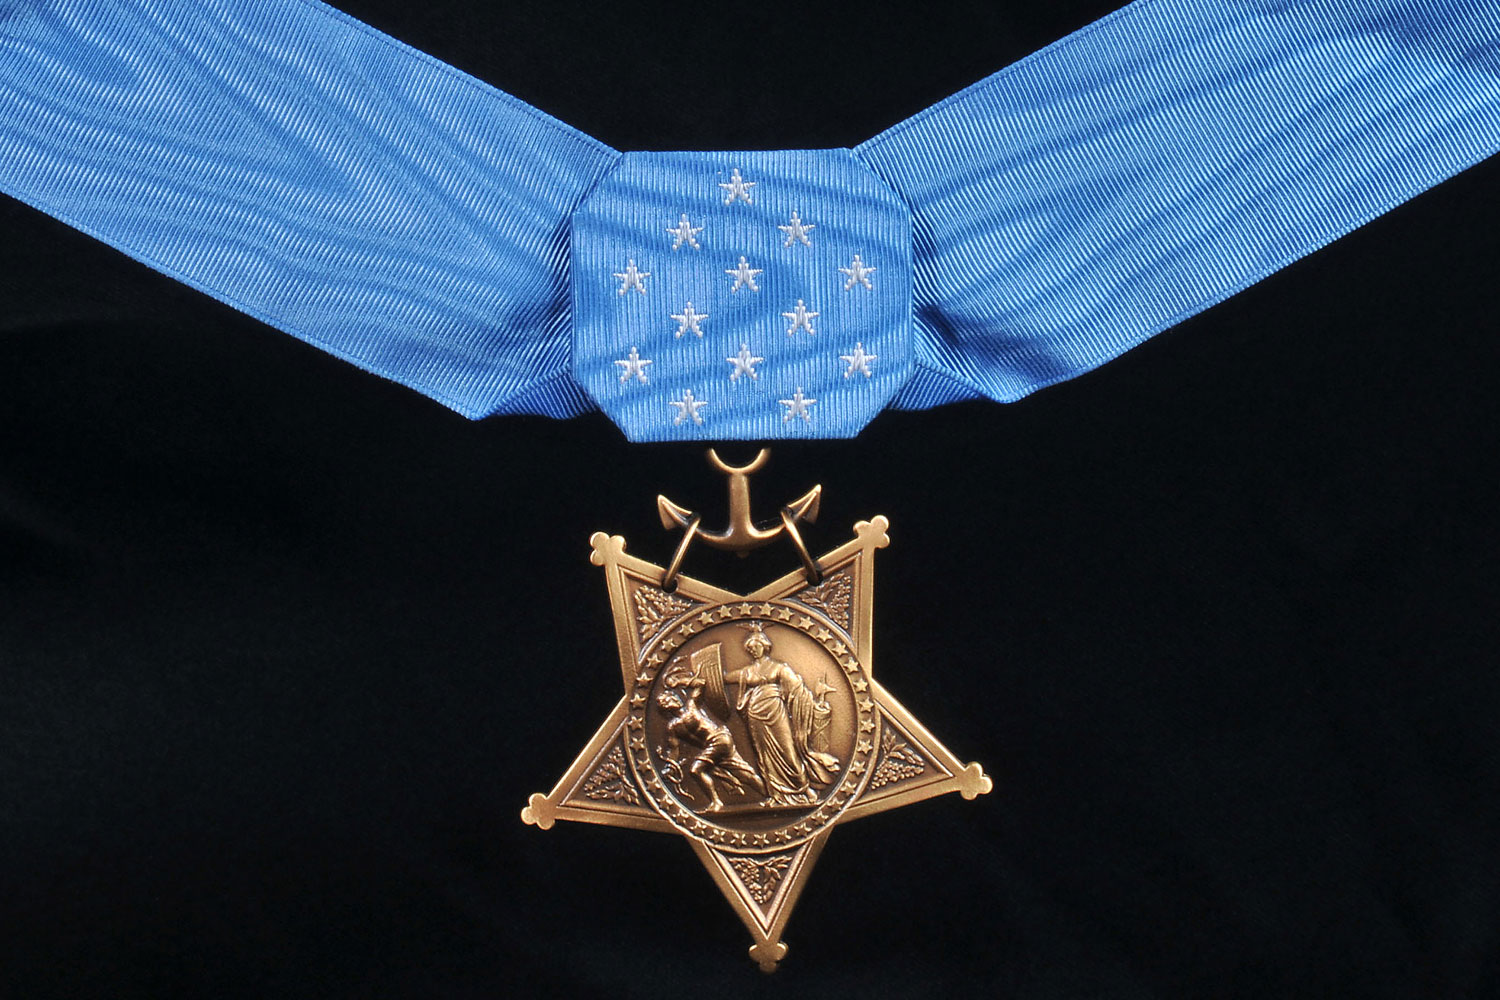 The Navy Medal of Honor — the first to be commissioned — depicts the Roman goddess of war, Minerva, as a symbol of the United States. She is battling Discord, represented by a person grasping snakes. Minerva is holding a bundle of rods known as a fasces to symbolize authority and strength through unity. In her other hand is the shield from the U.S. coat of arms. This medal also is given to members of the Marines and Coast Guard.